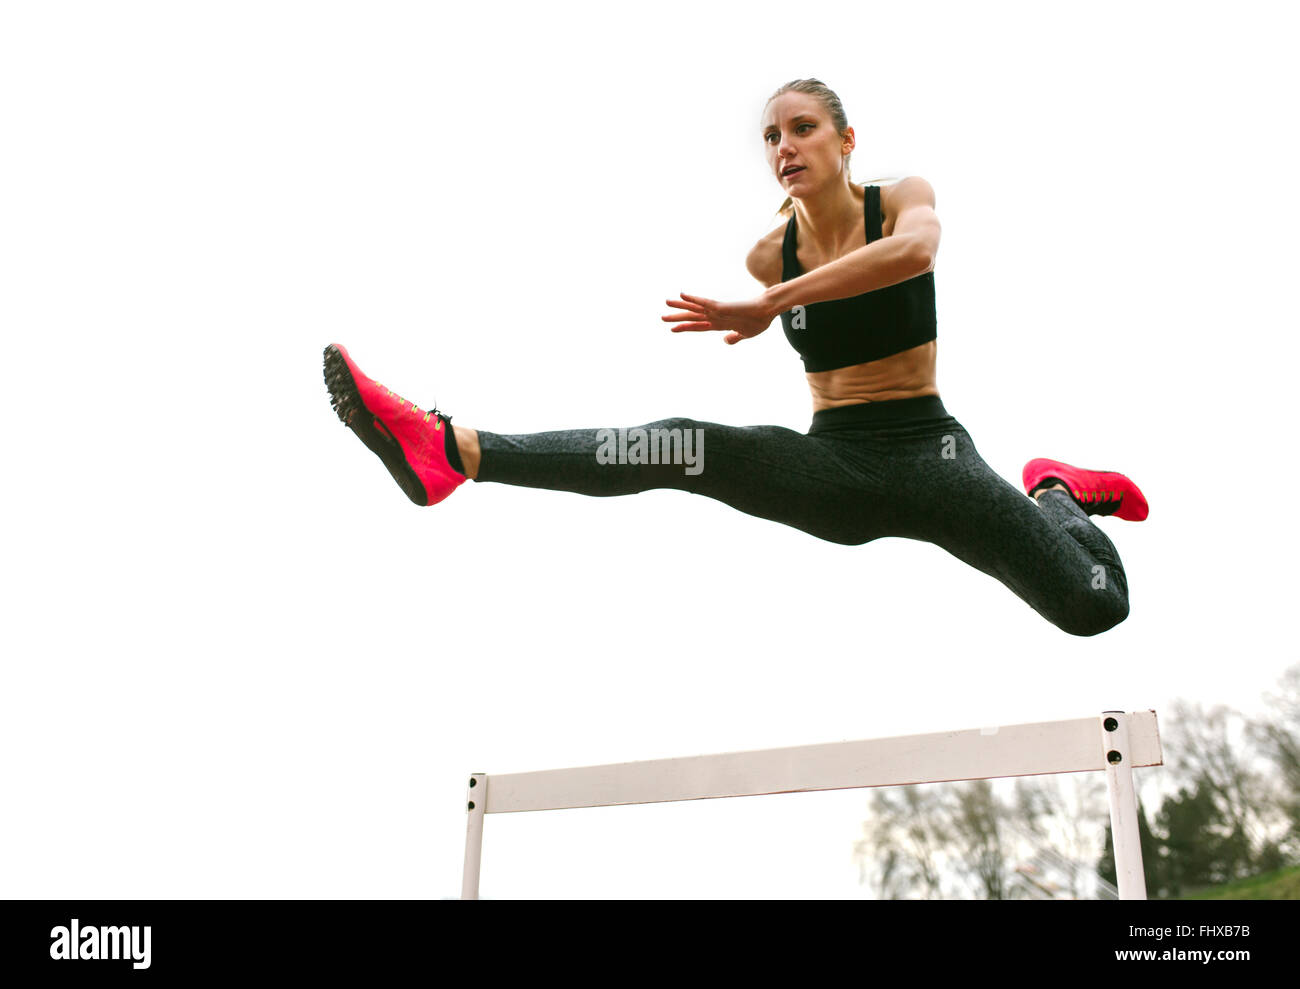 Athlete woman jumping in a running track - Stock Image